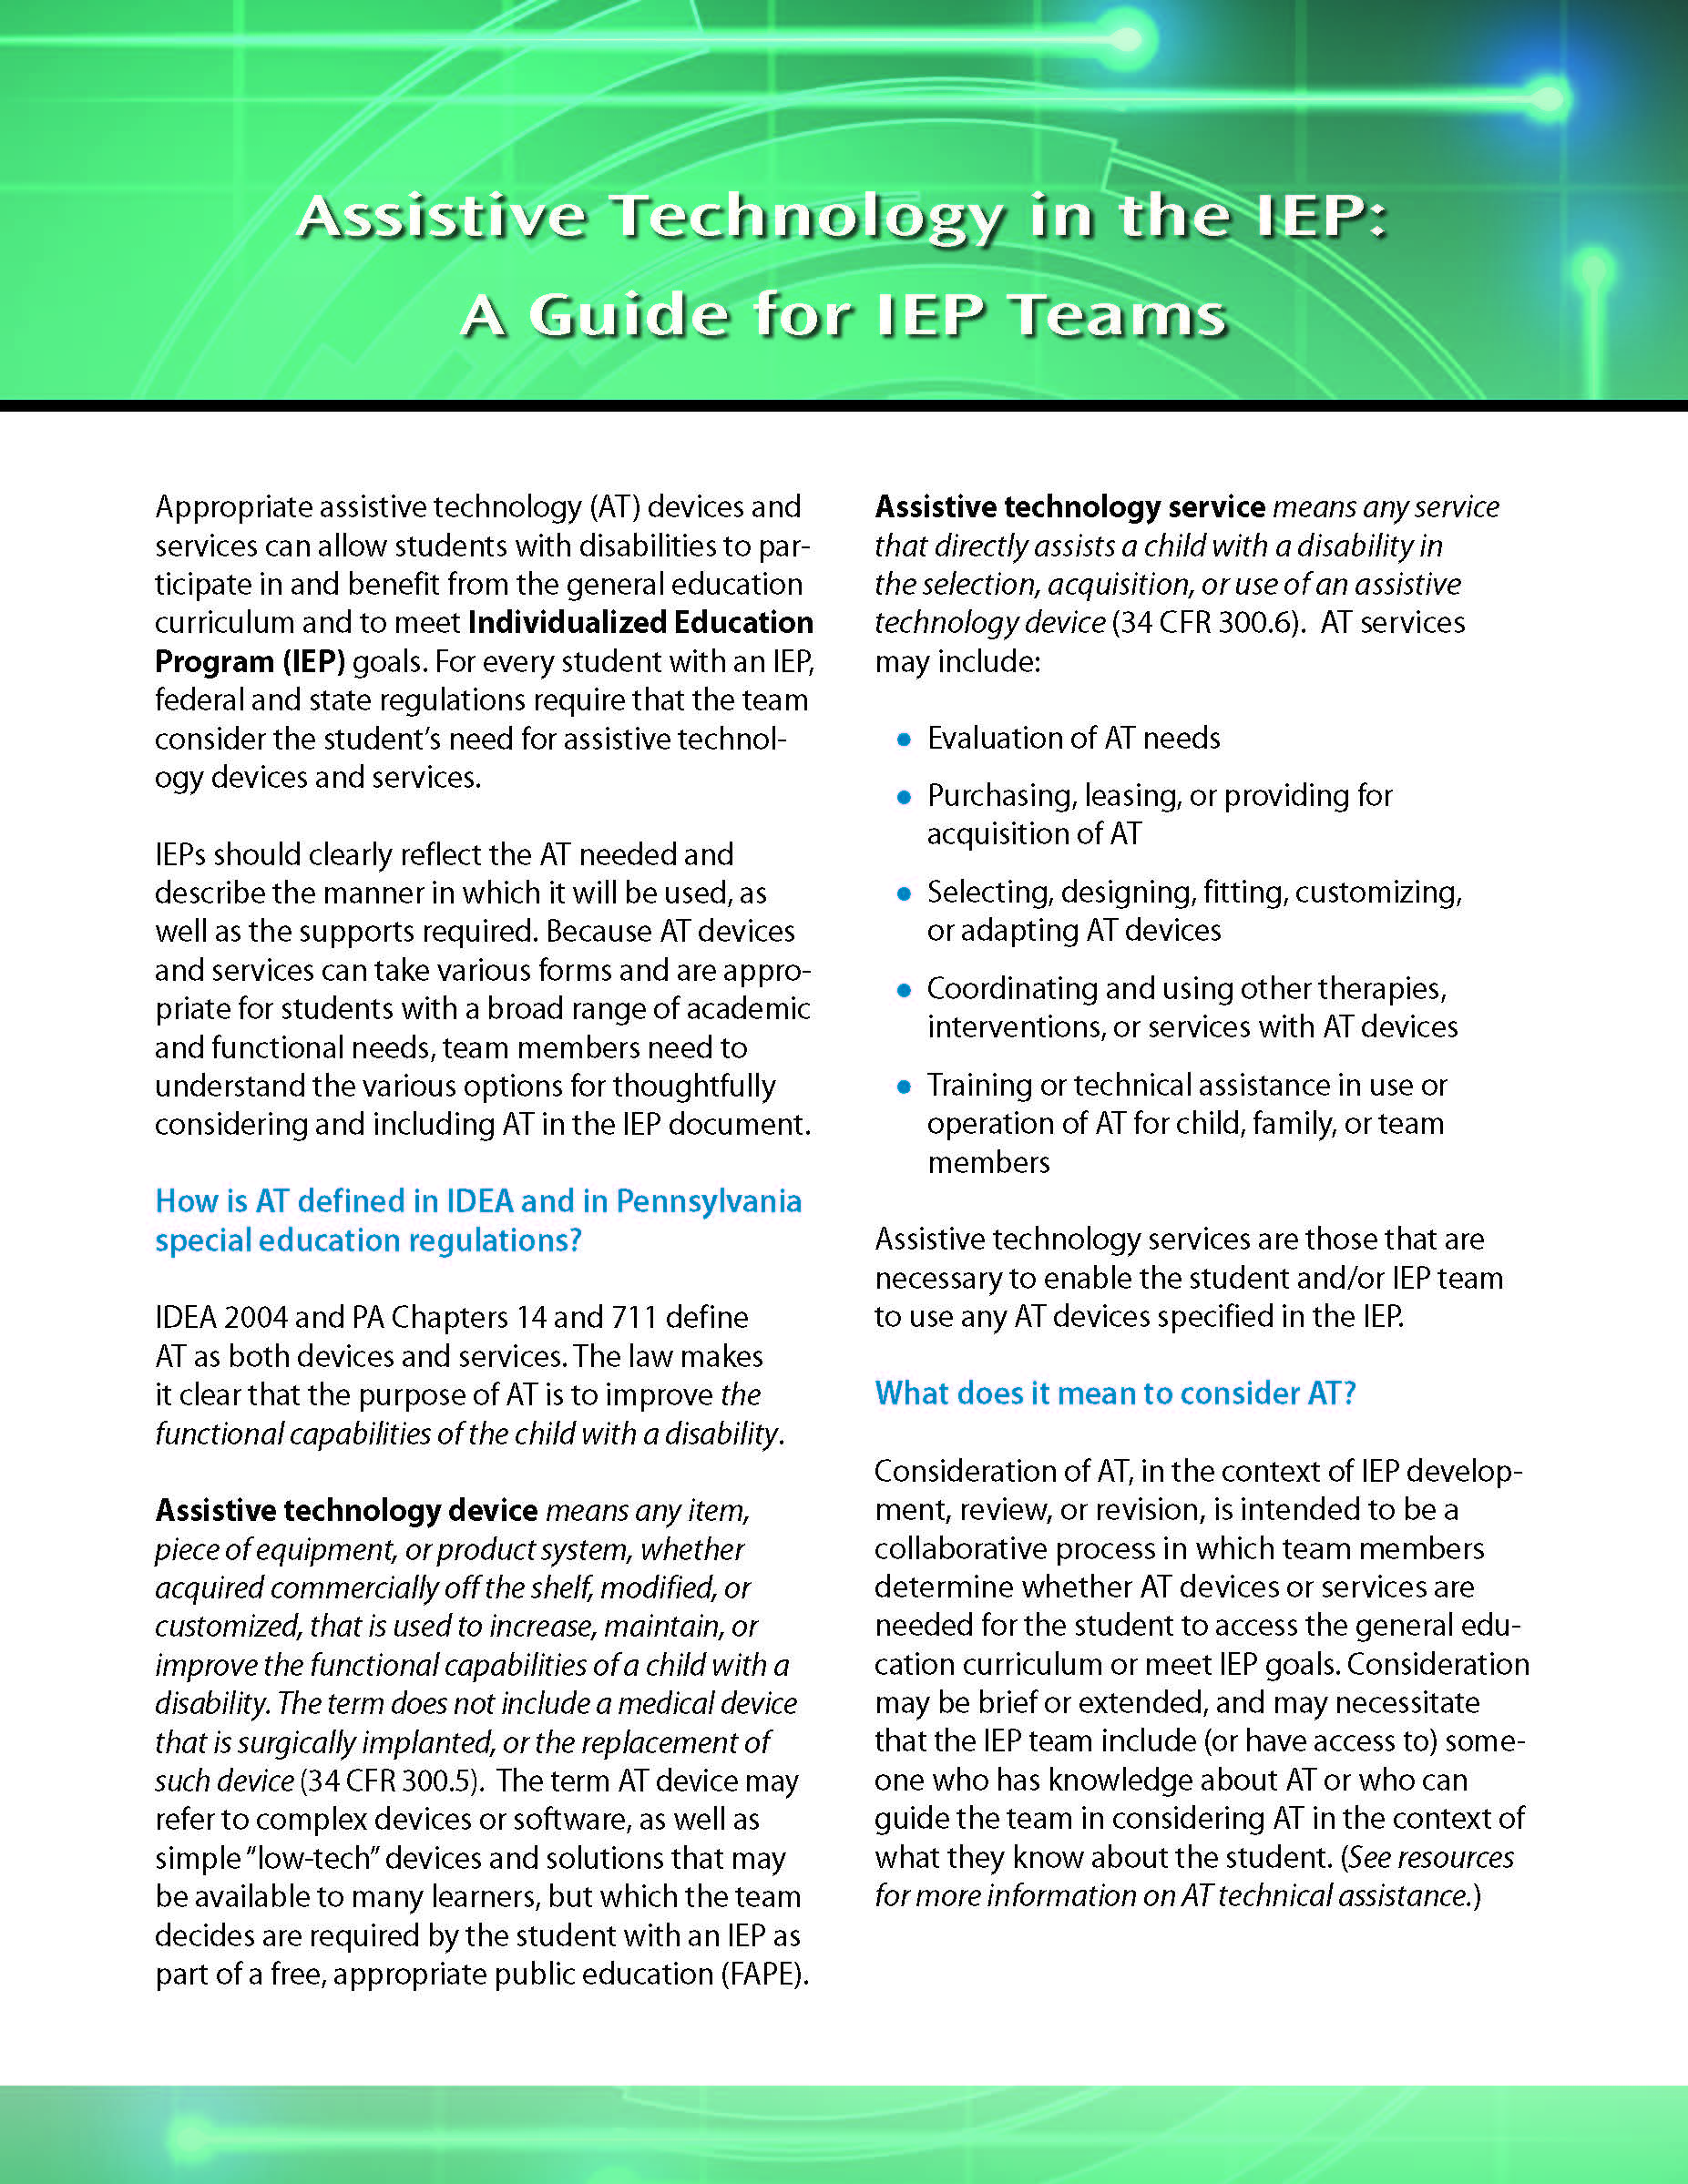 Assistive Technology in the IEP: A Guide for IEP Teams